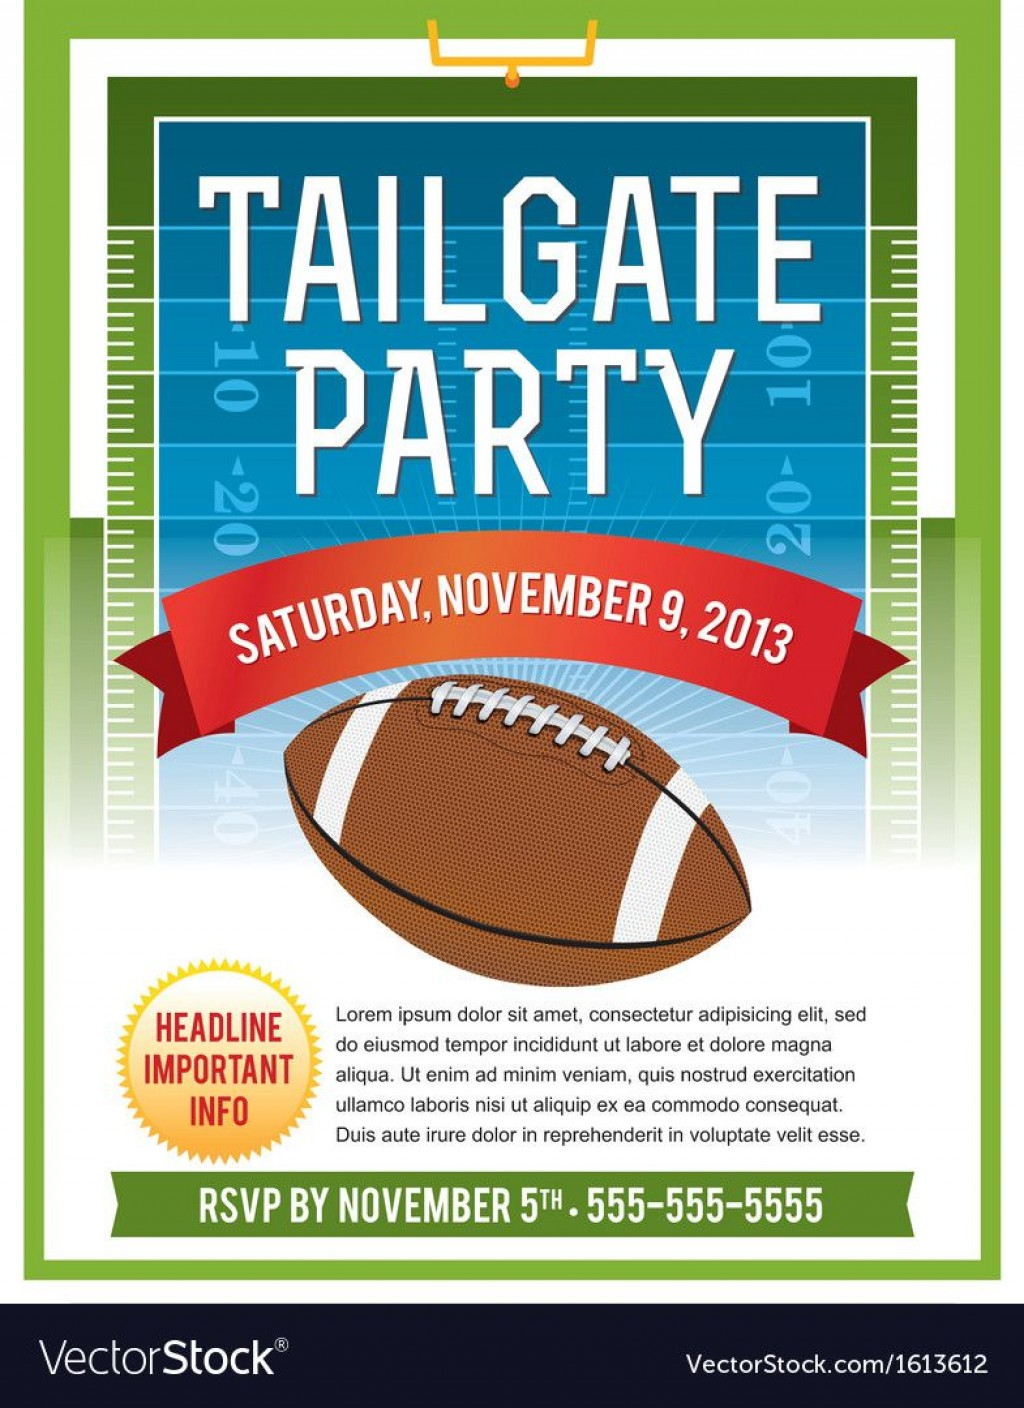 006 Excellent Free Tailgate Party Flyer Template Download Photo Large